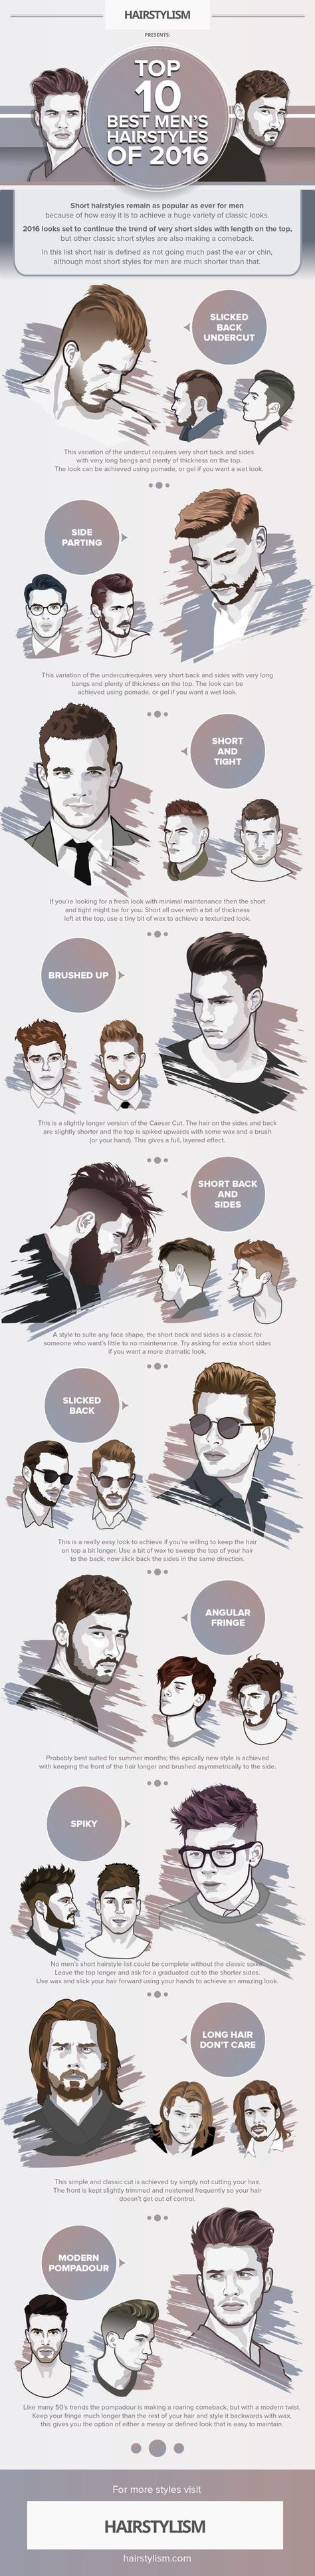 best images about arthur cuts on pinterest haircuts celebrity